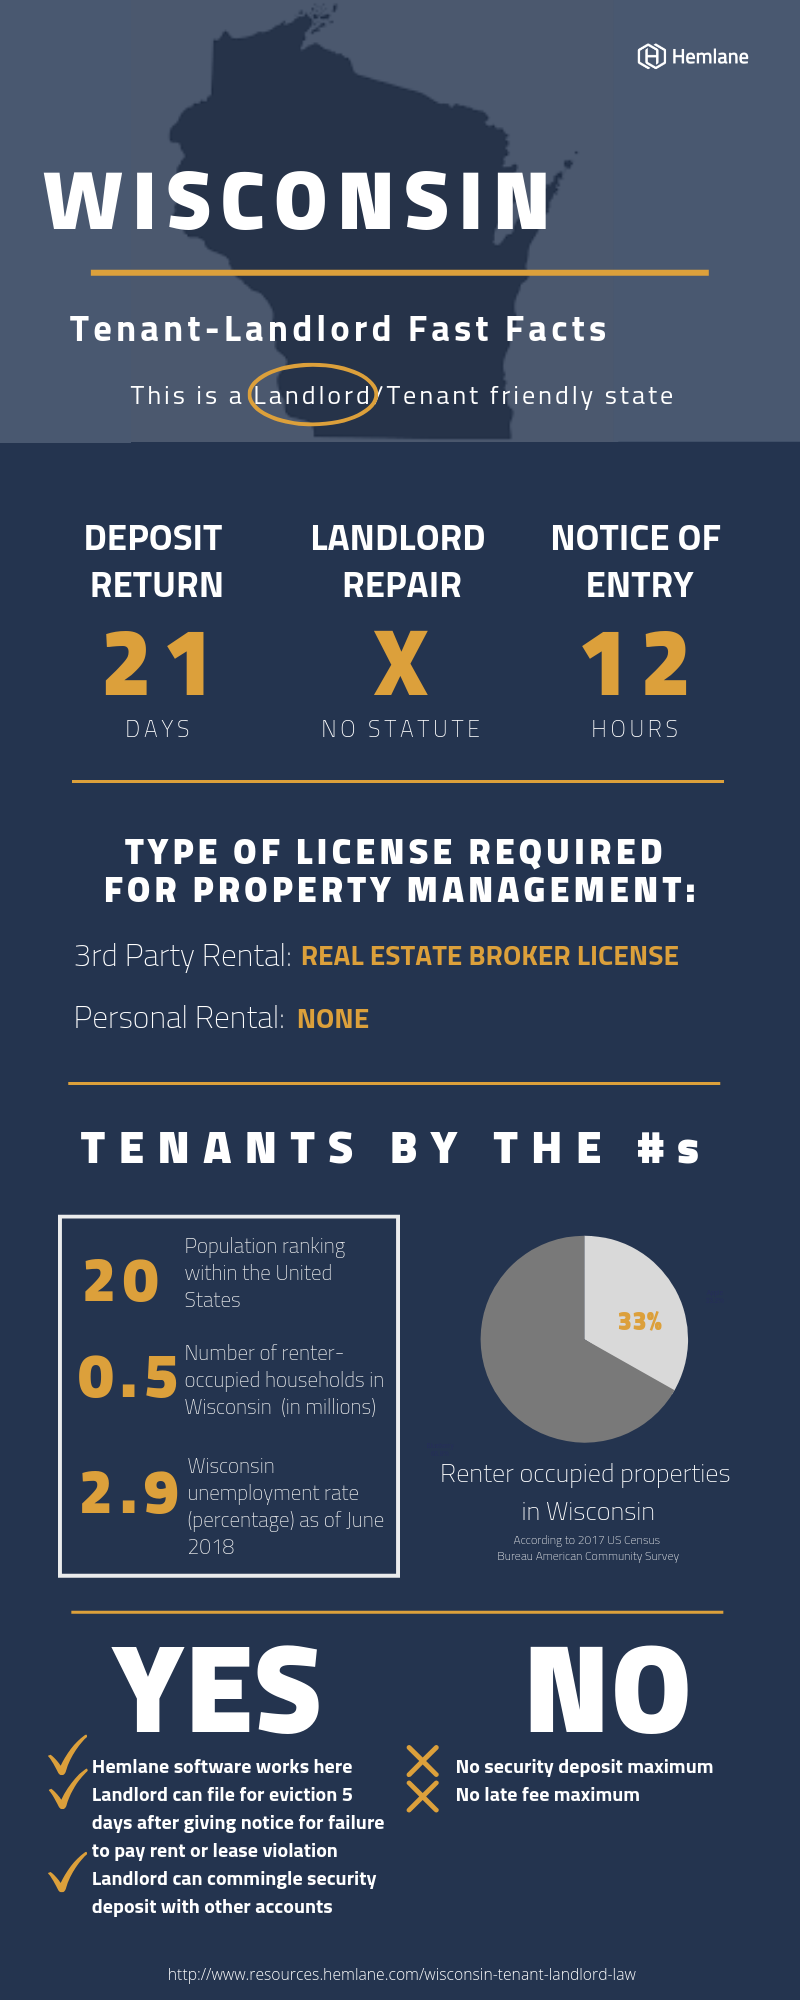 Wisconsin-Tenant-Landlord-Law-Fast-Facts